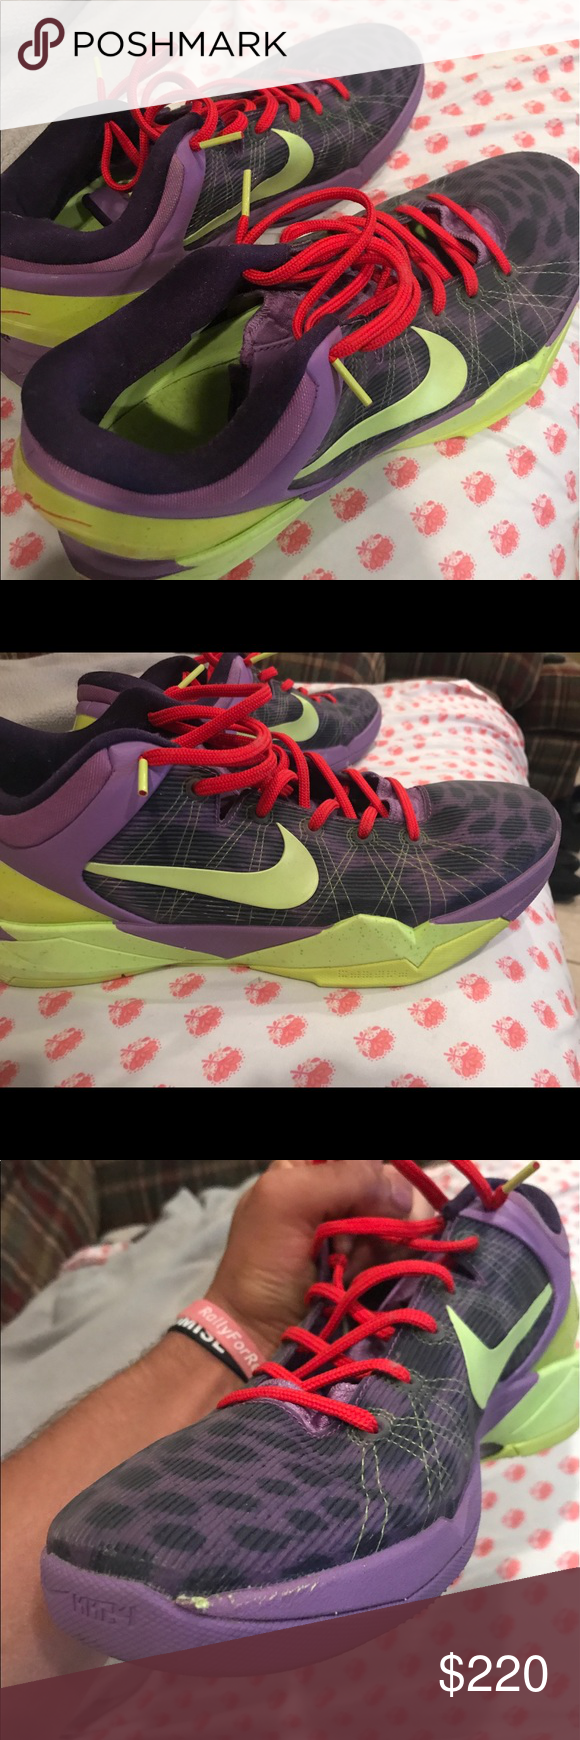 Nike Kobe 7 Christmas No box..8.5/10. Really comfy. Can ship to ...